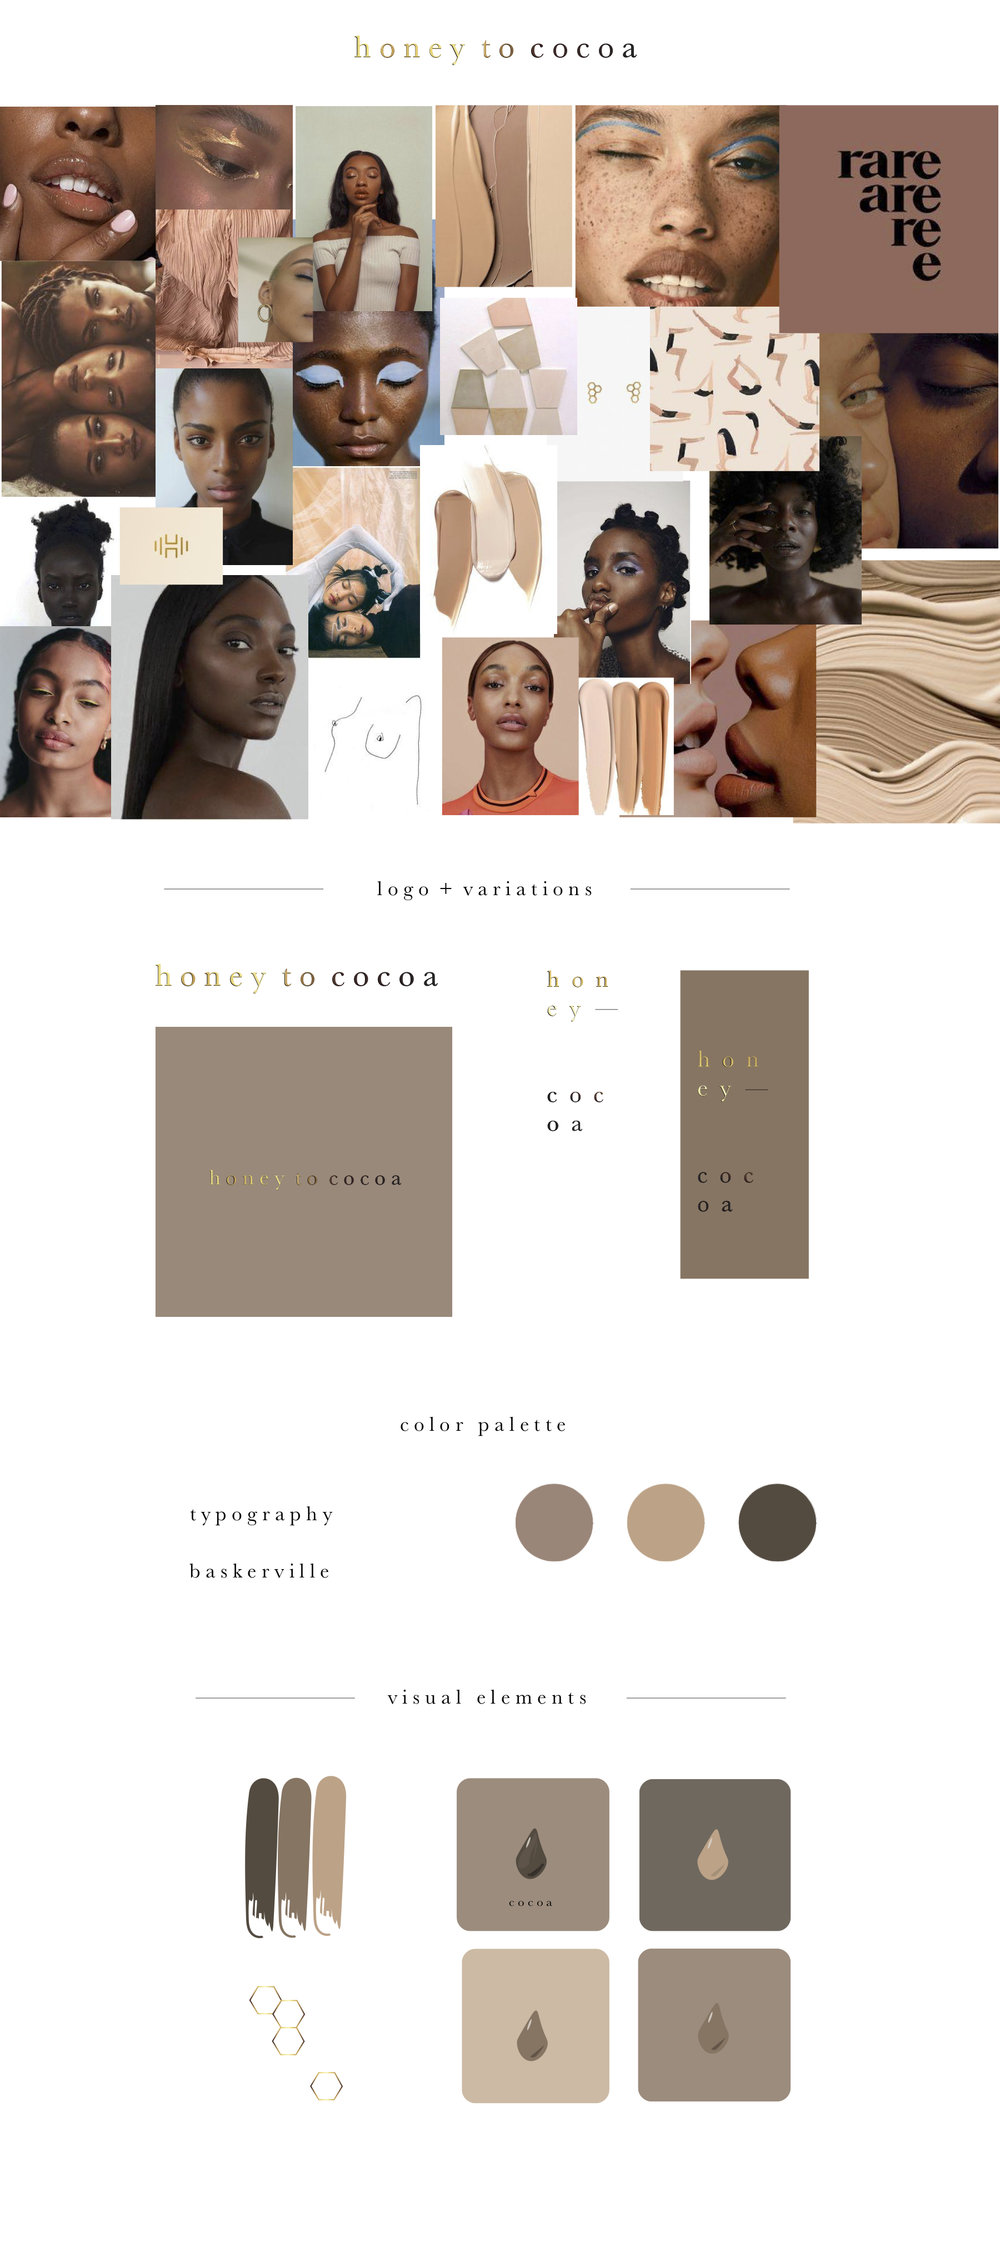 honey to cocoa - a digital platform for Women of Color in the beauty industry.branding + identity design.moodboard is curated with visuals from pinterest.